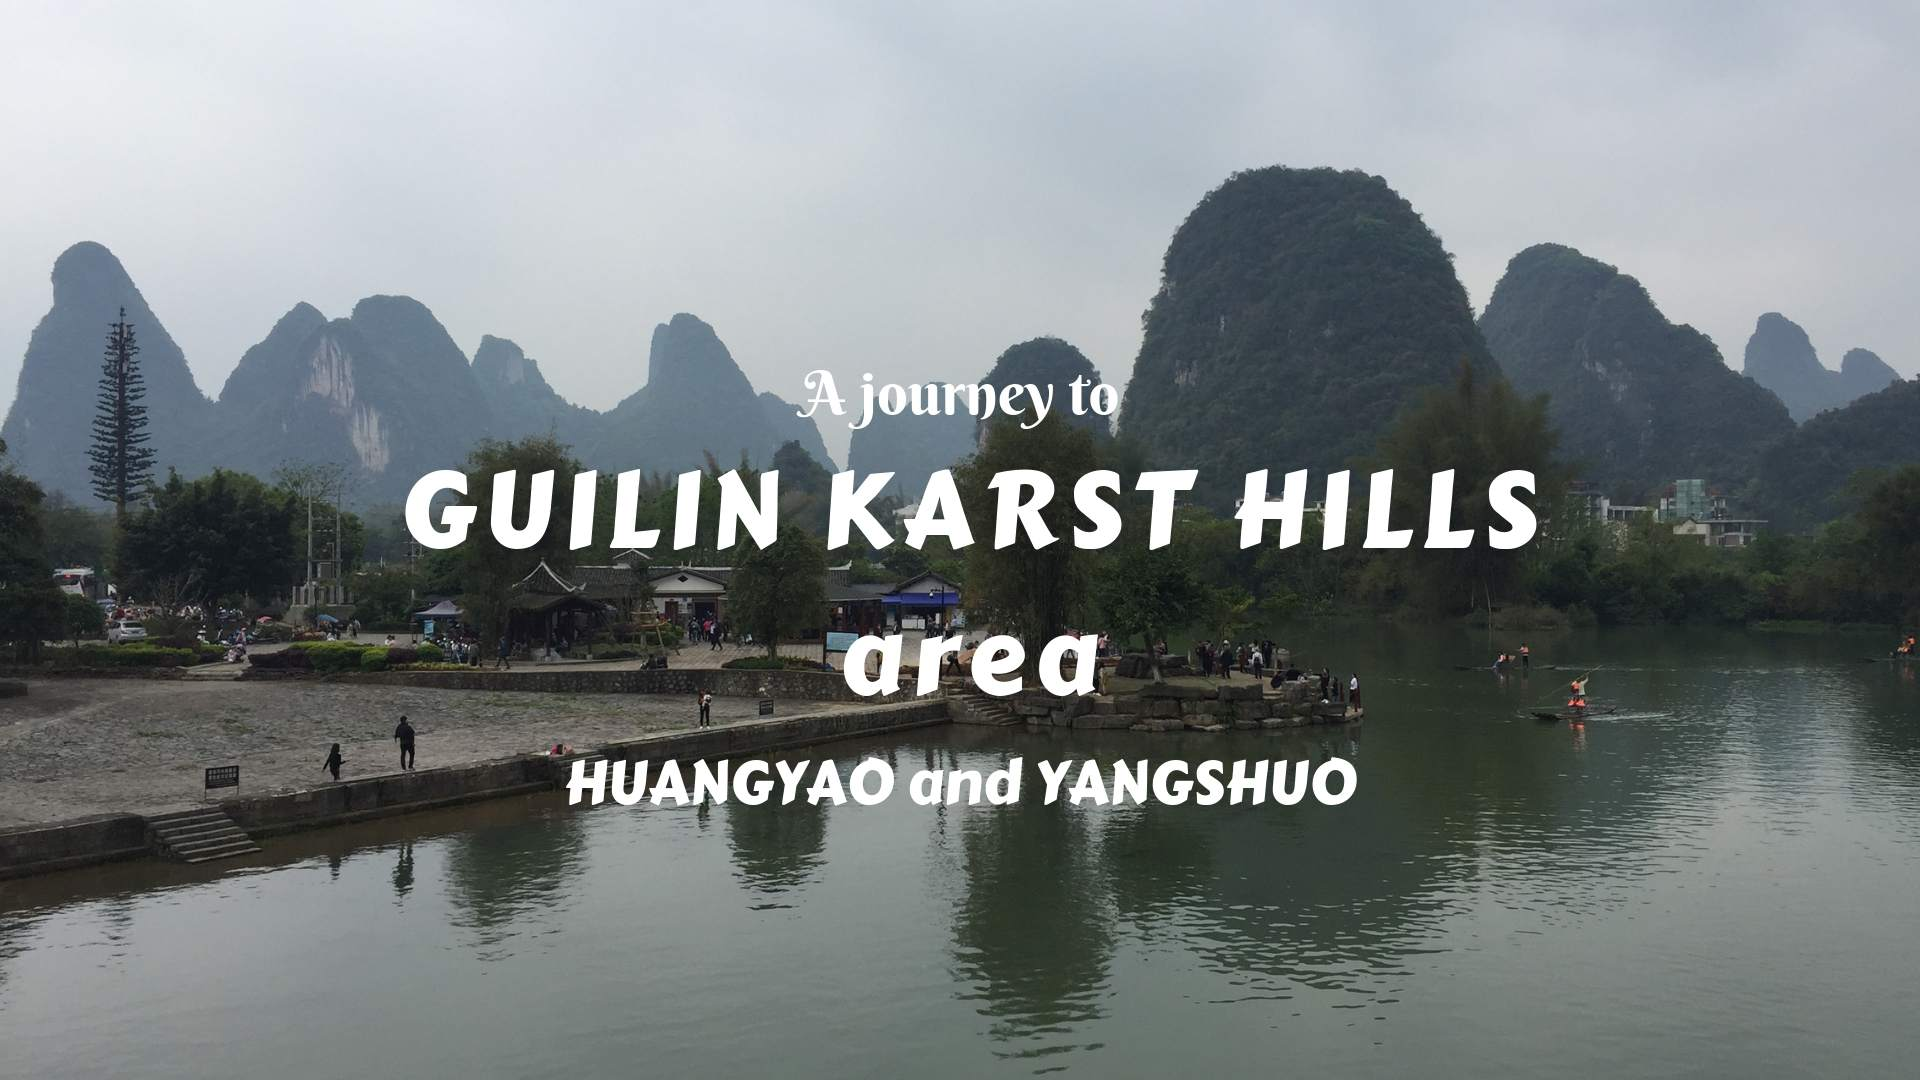 A JOURNEY TO GUILIN KARST HILLS AREA- EXPLORE HUANGYAO AND YANGSHUO